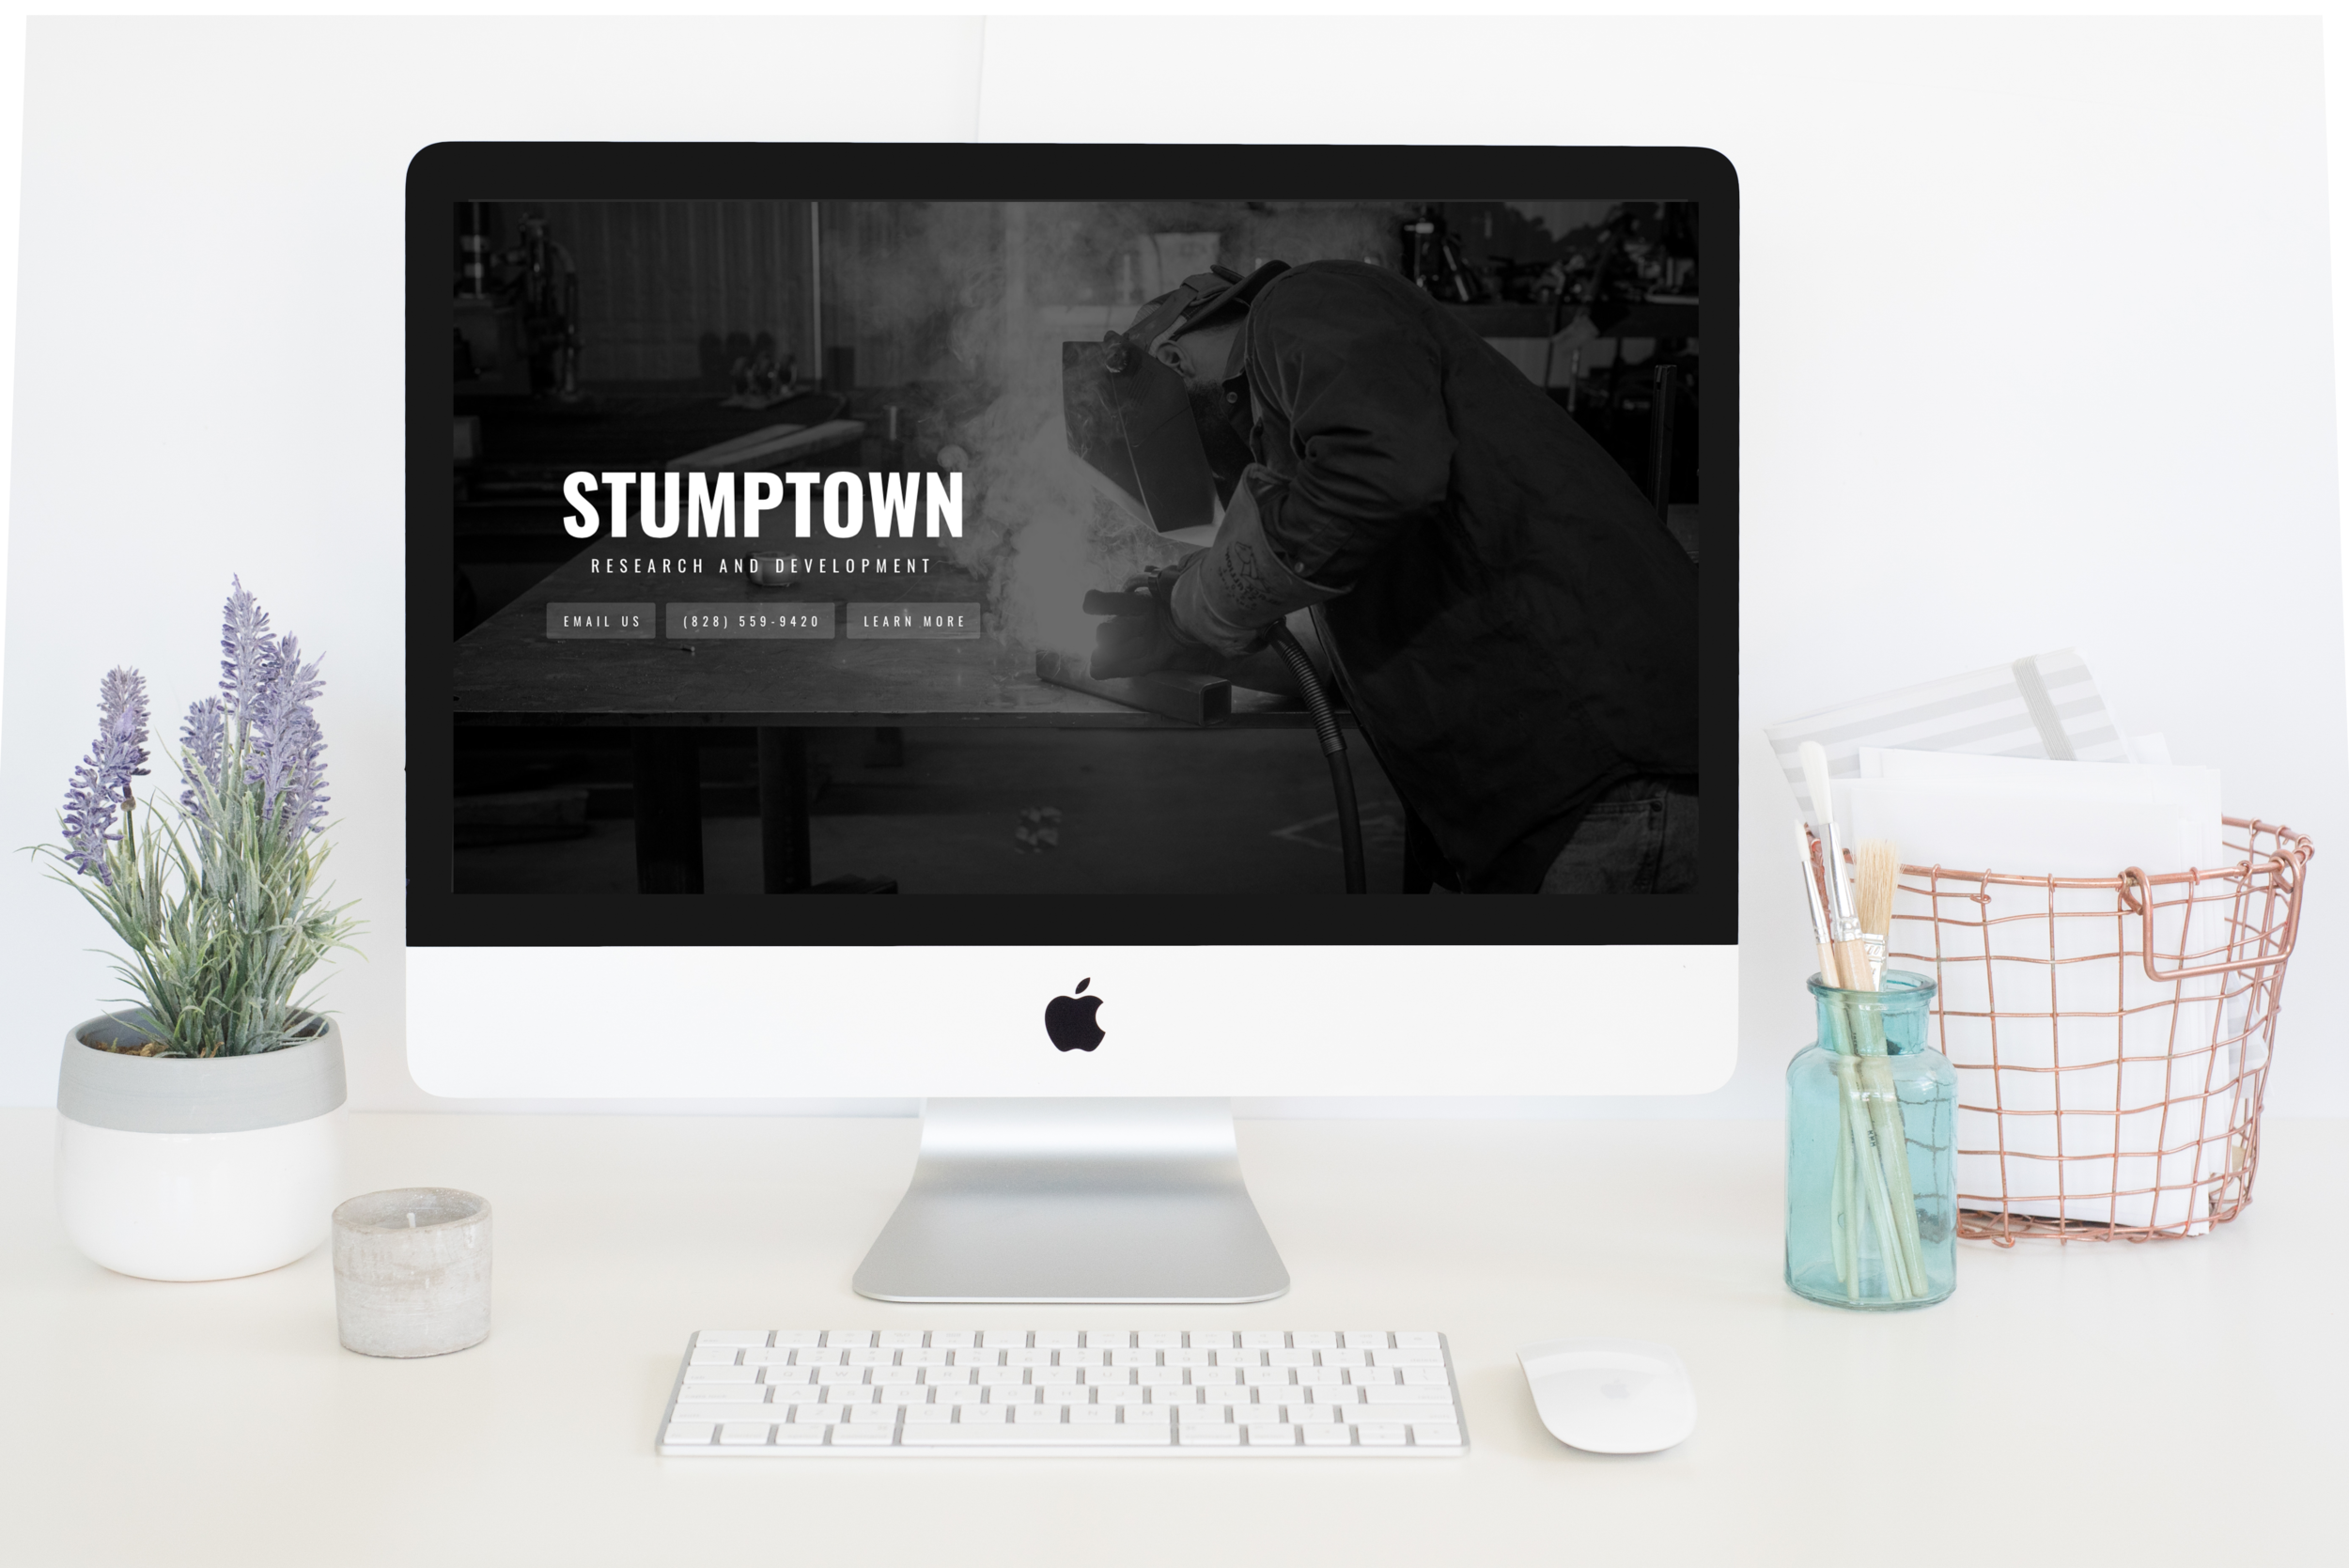 Stumptown Research & Development - Manufacturing + Consulting Services